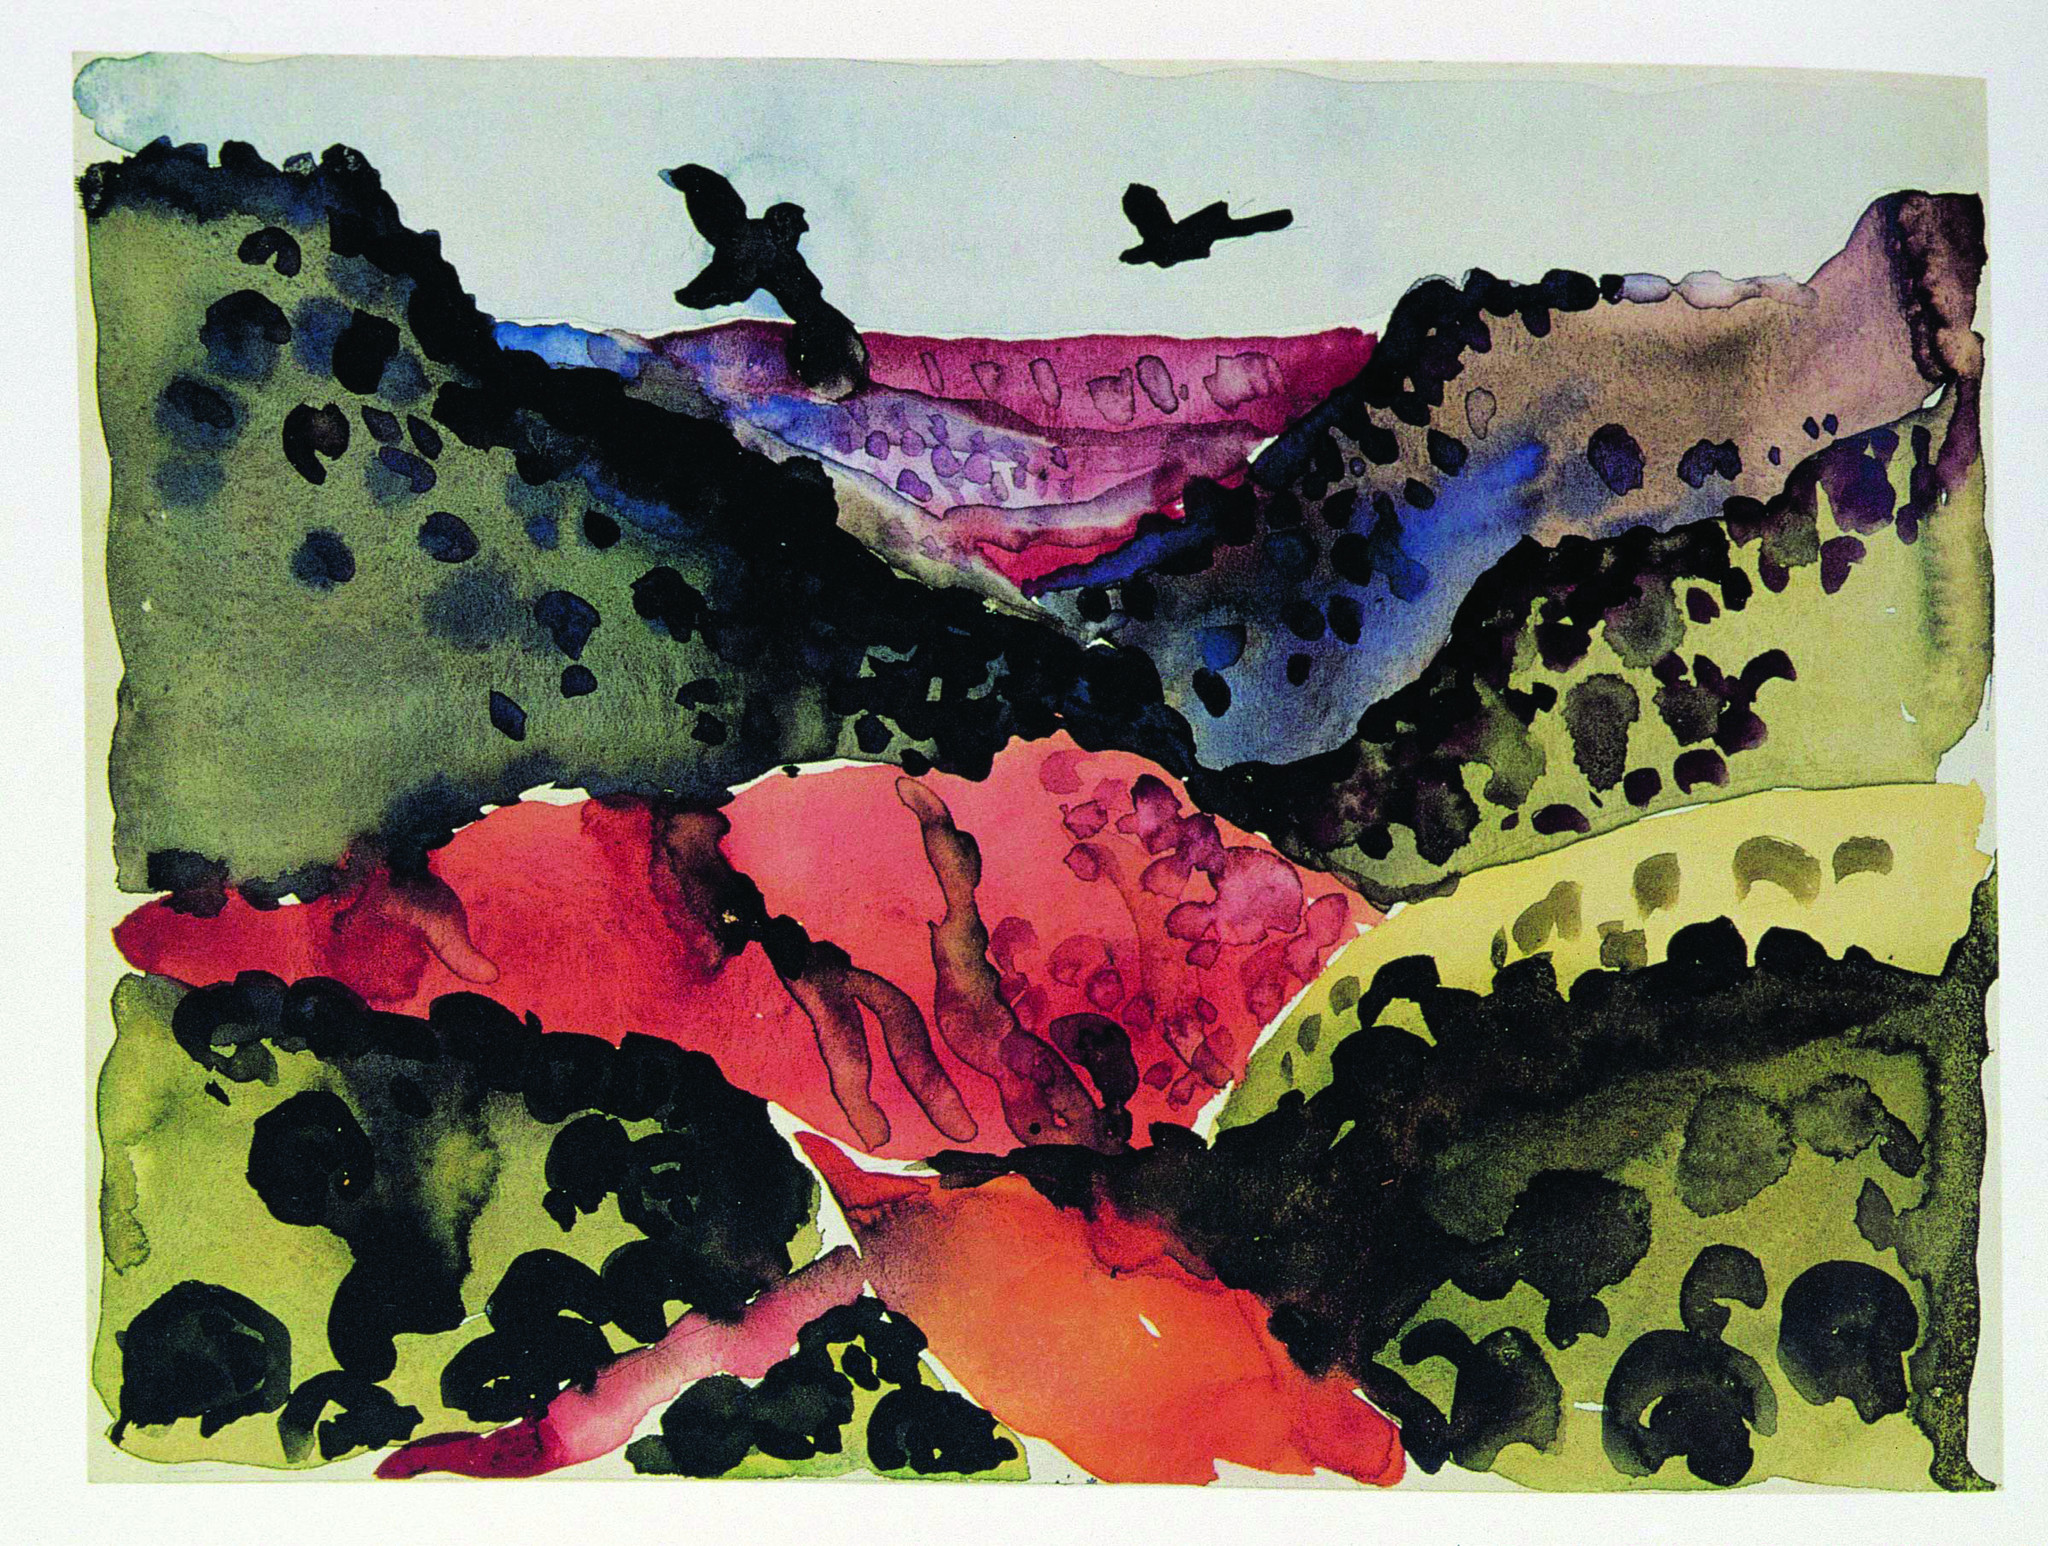 """Canyon With Crows,"" 1917, watercolor and graphite on paper, 8-3/4 inches by 12 inches. Georgia O'Keeffe Museum Gift of the Burnett Foundation."